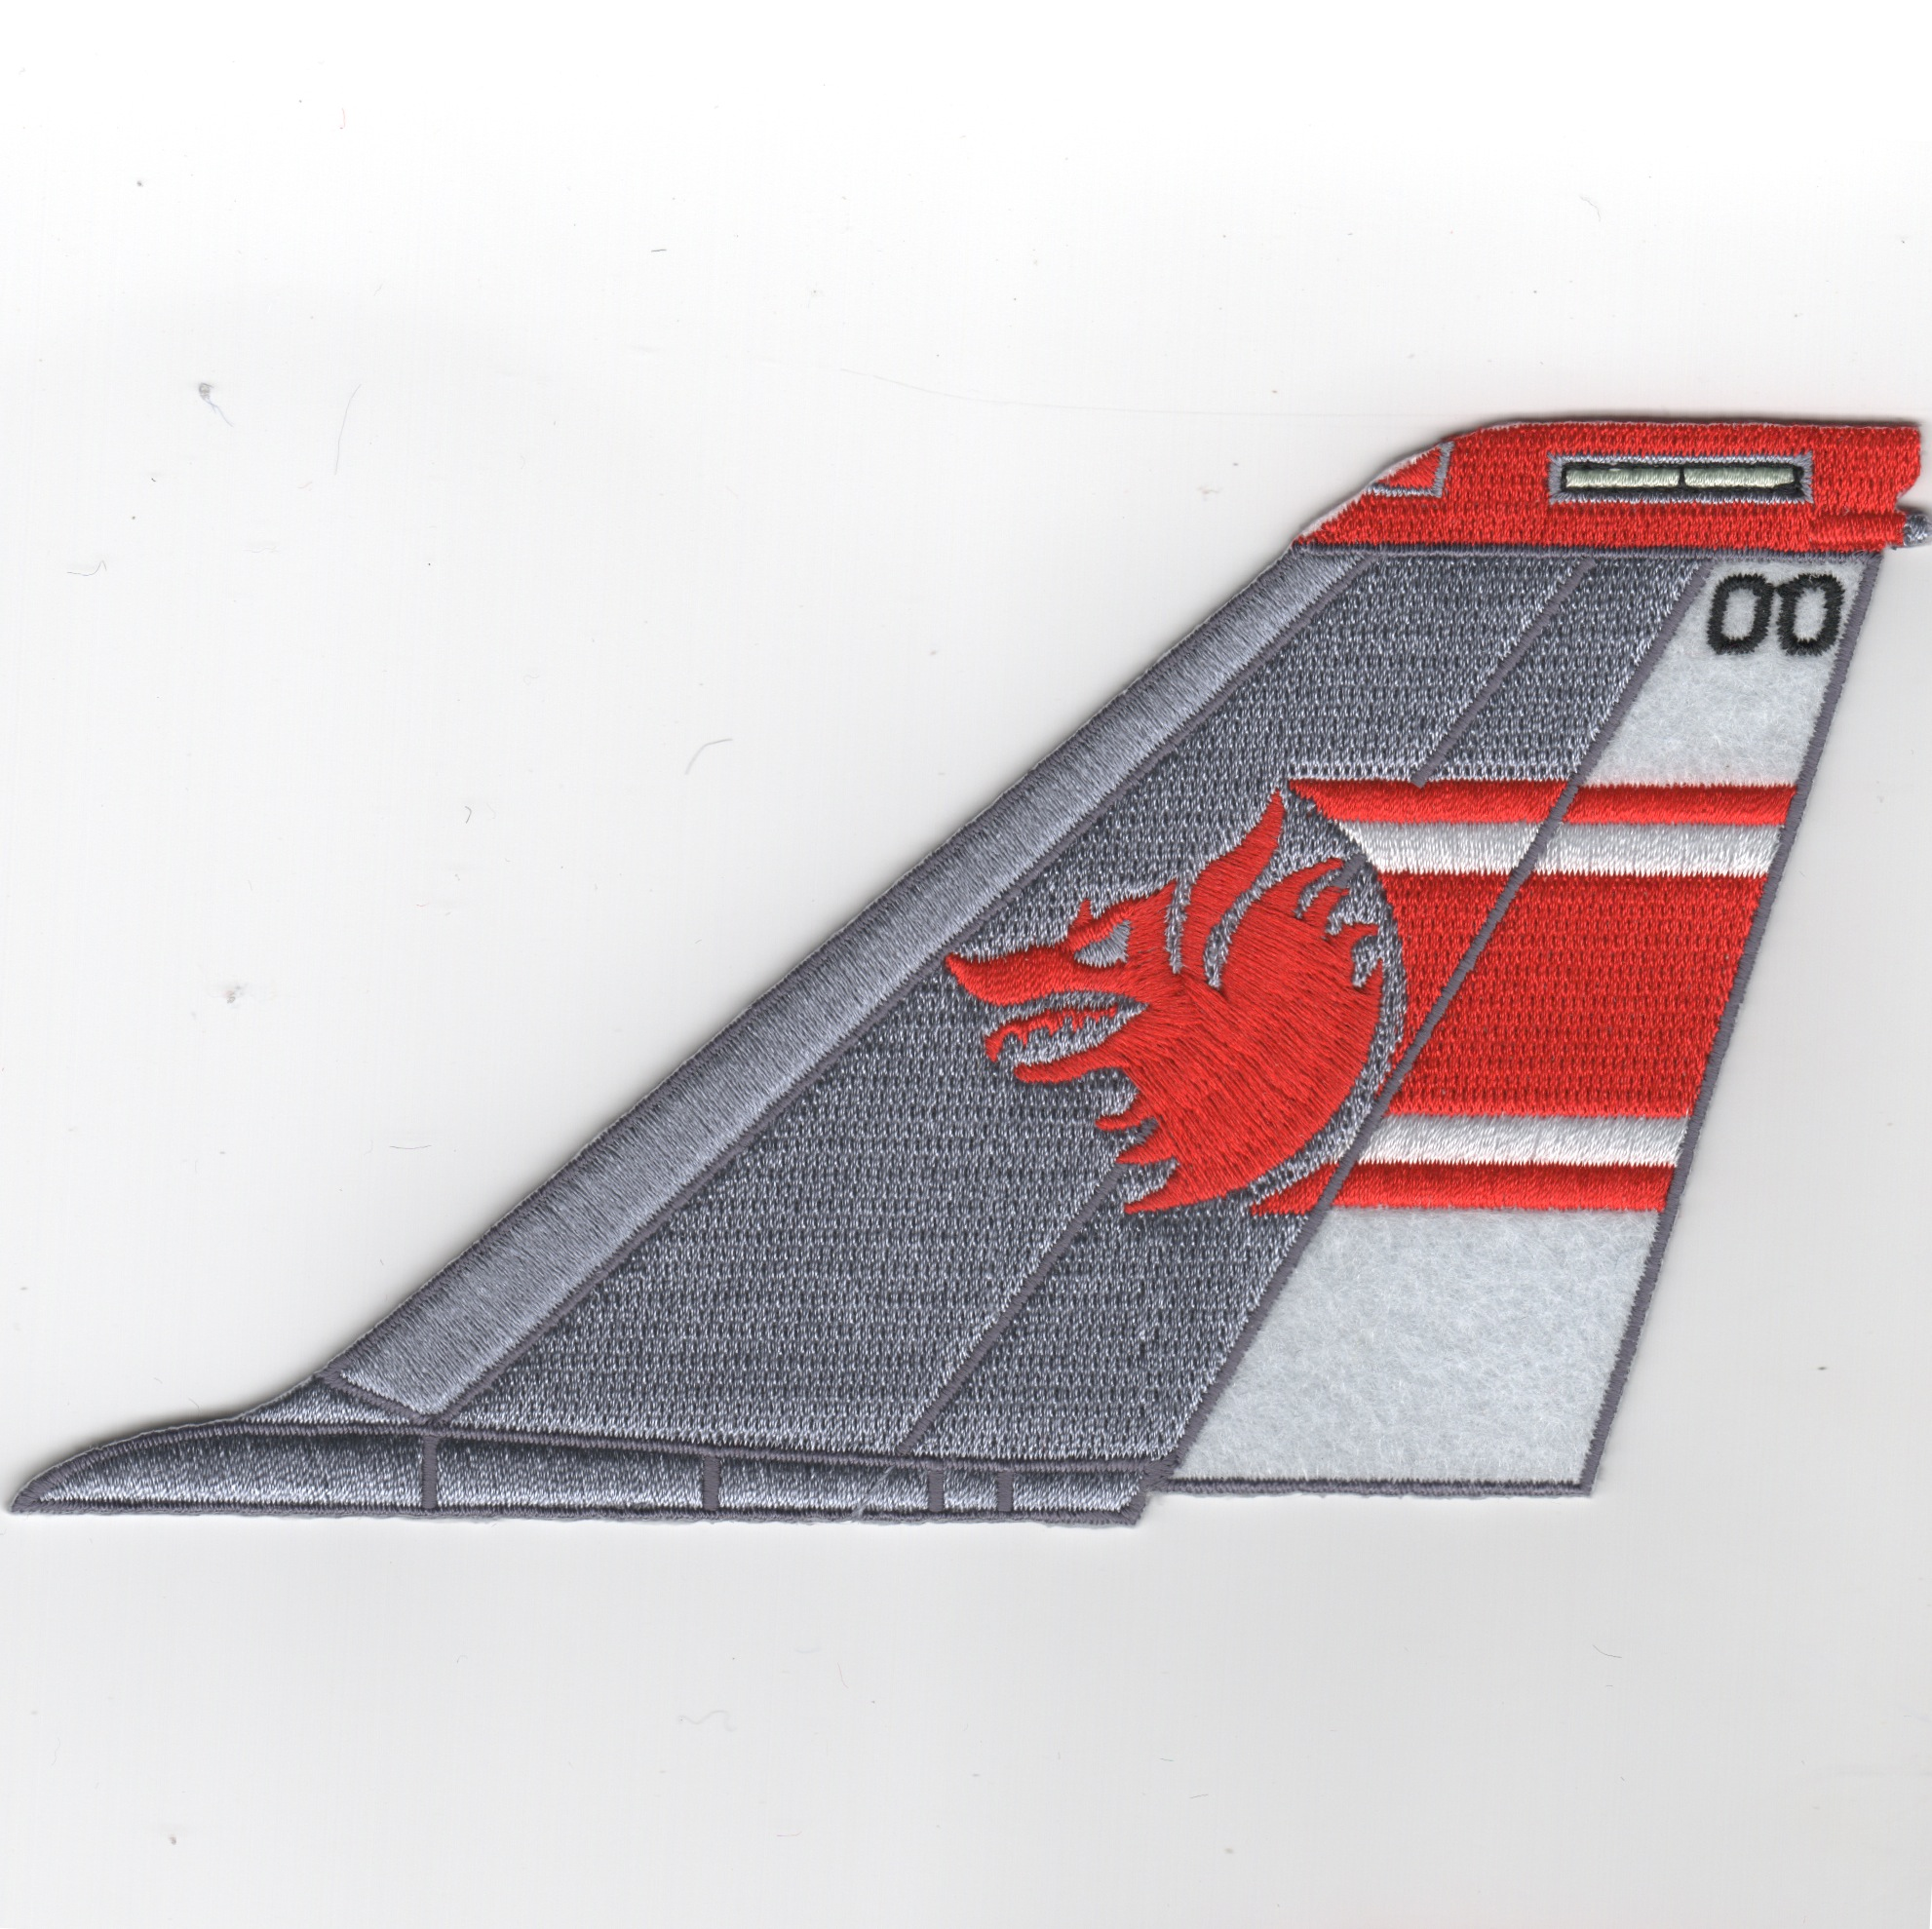 VF-1 F-14 Tomcat Tail Fin (Red/White/No Text)